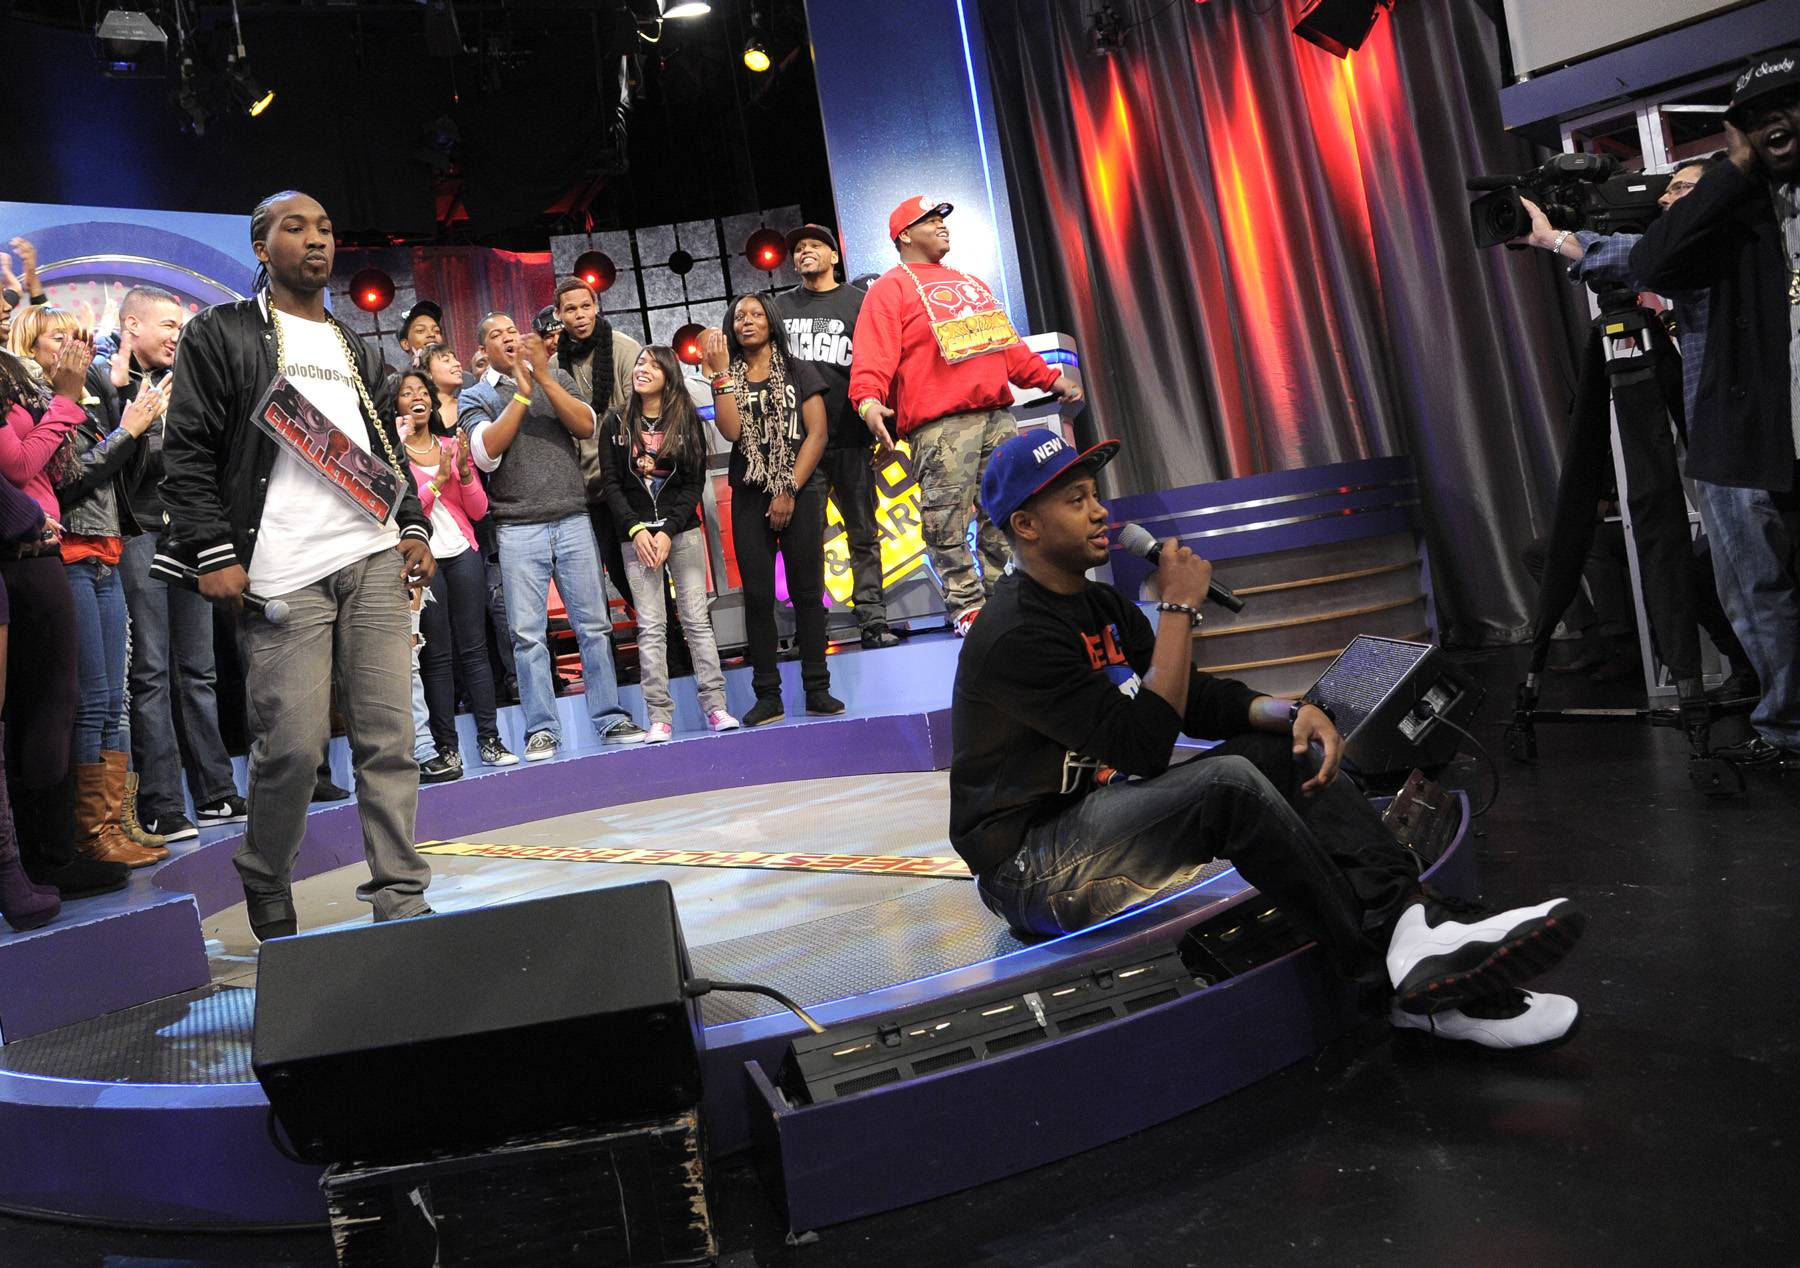 Let's See - Terrence J tells the audience to sit tight and hold on to find out who has won the battle of Relly vs Dolo Chillin at 106 & Park, January 20, 2012. (Photo: John Ricard / BET)